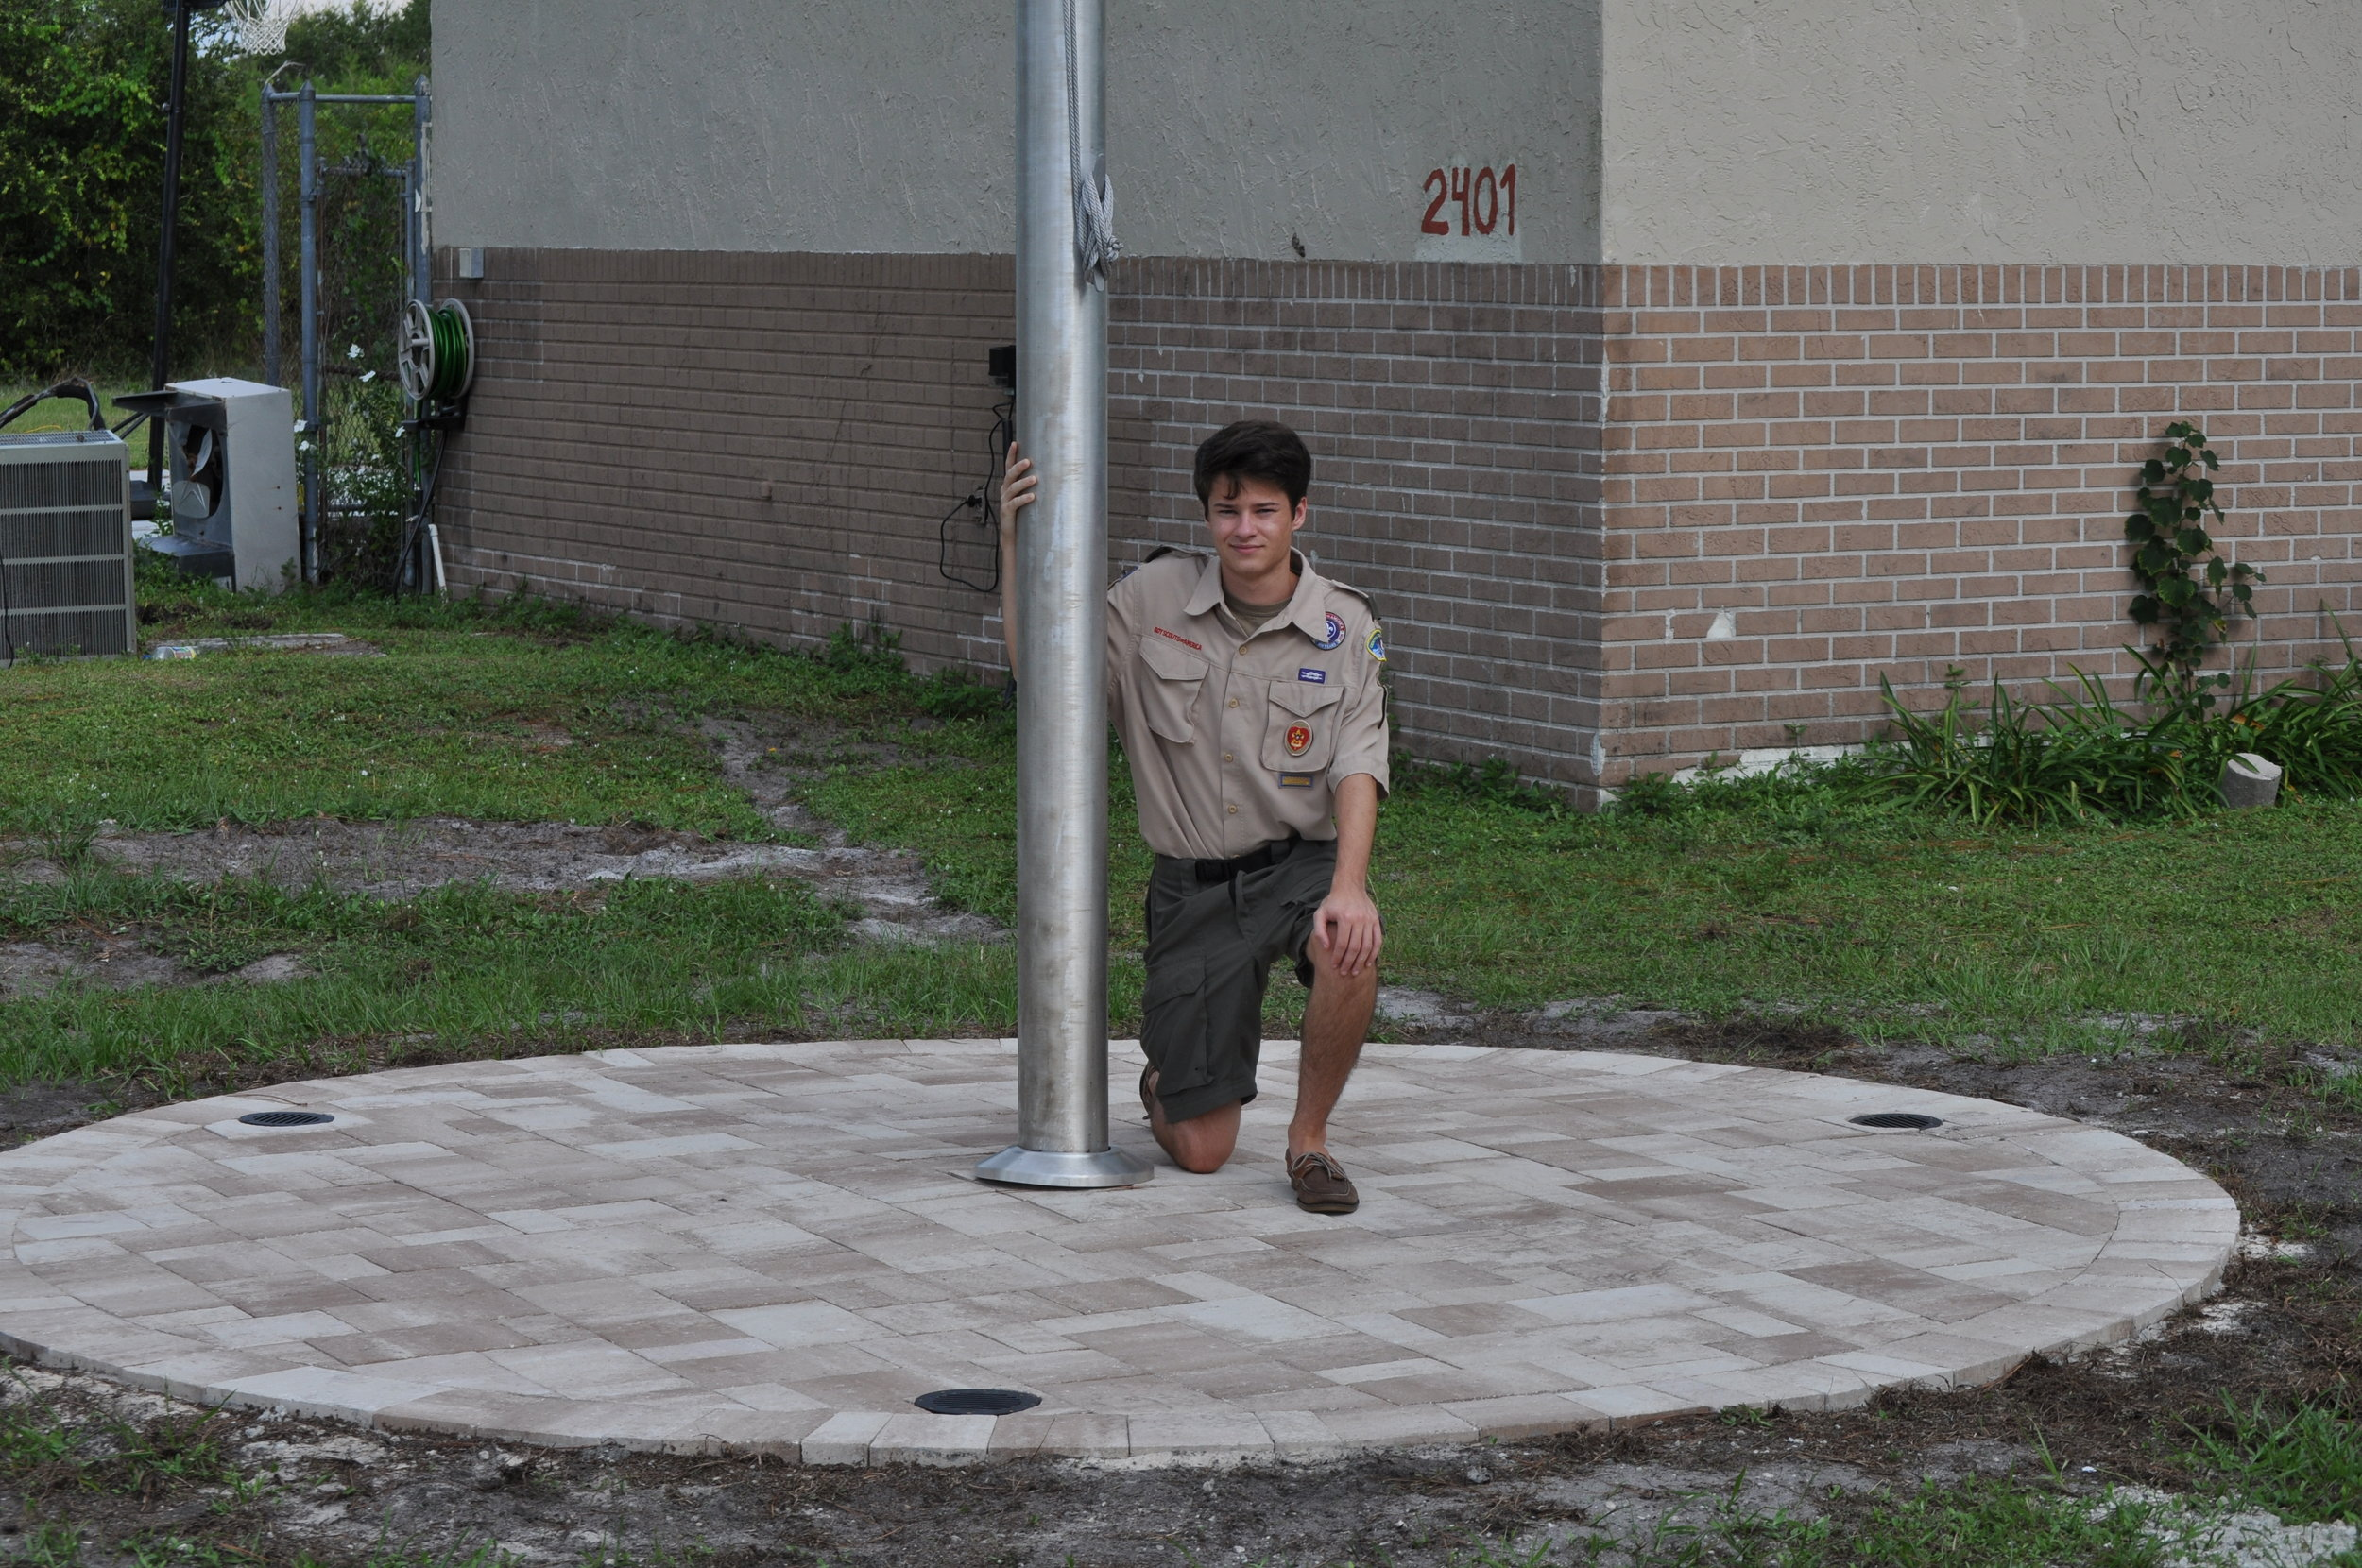 One of our scouts, Zachary Zaroogian, has completed his Eagle Project, which was to install a 30' flag pole at the Scoutpost!